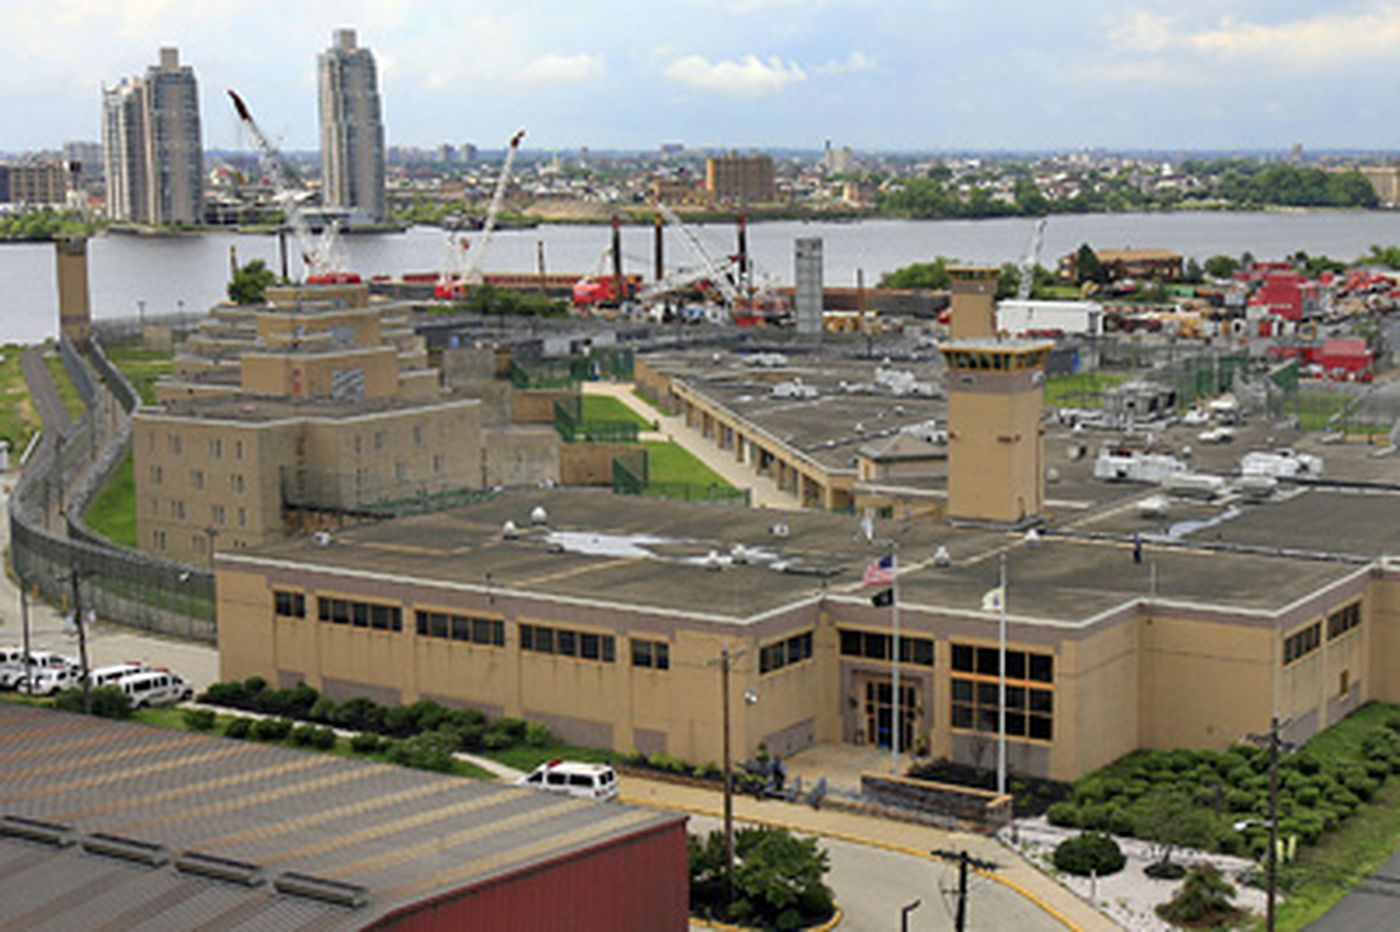 Camden's riverfront prison yields to redevelopment